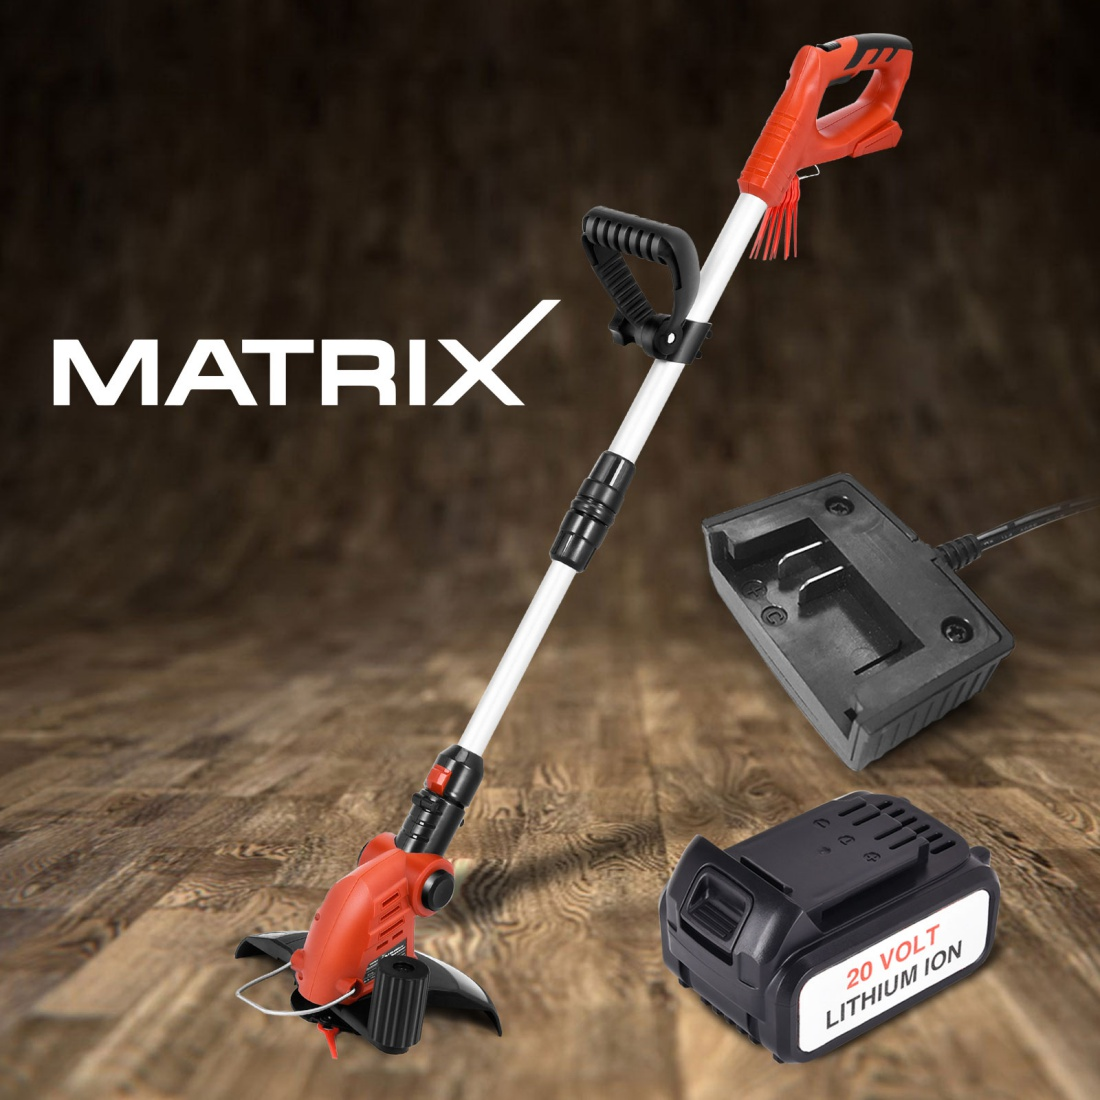 Matrix 20V Cordless Grass Edge Trimmer Snipper 4.0ah Battery Charger Garden Tool